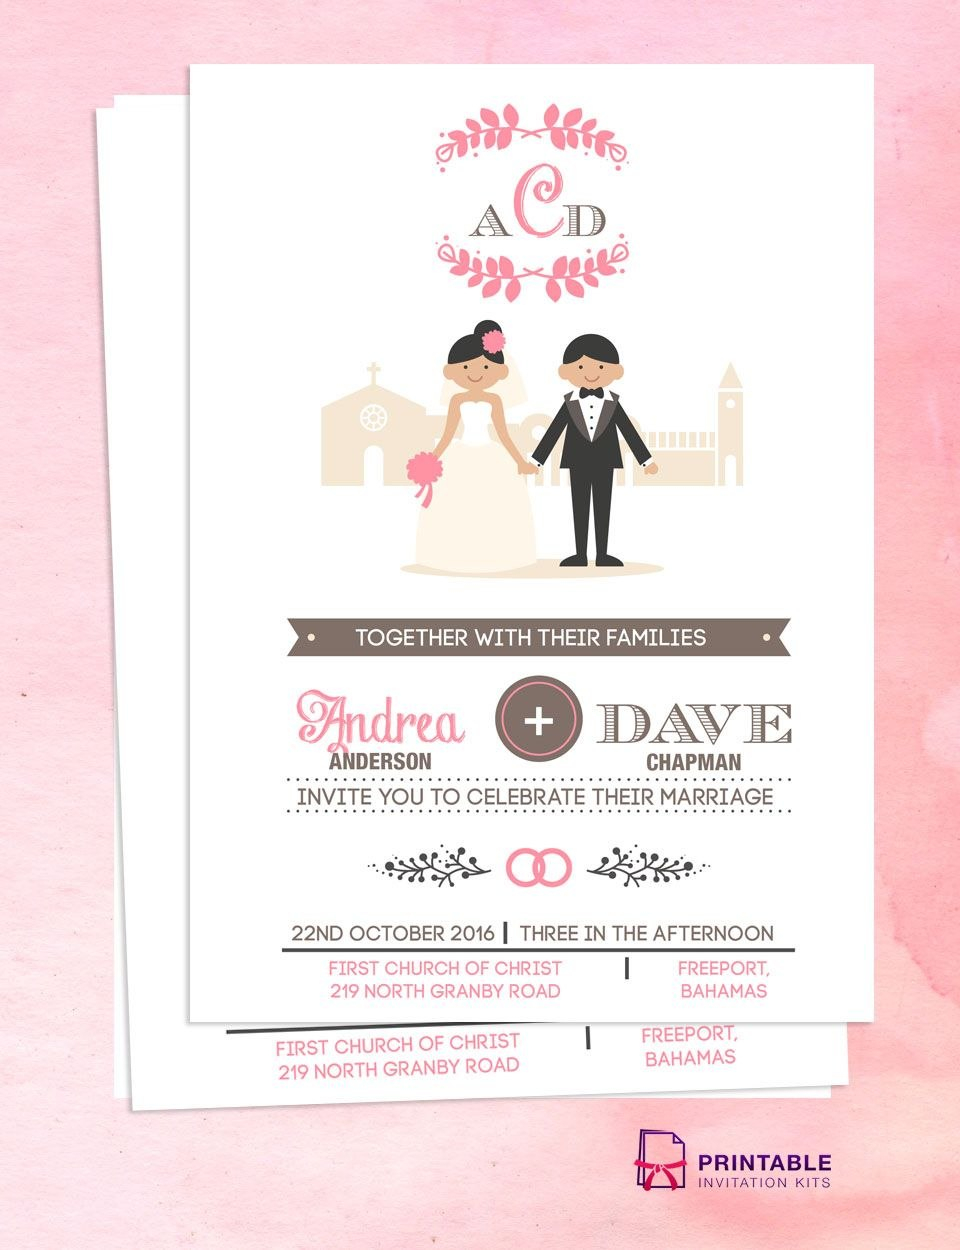 Illustrated Couple In Front Of Church Wedding Invitation Template Inside Church Wedding Invitation Card Template